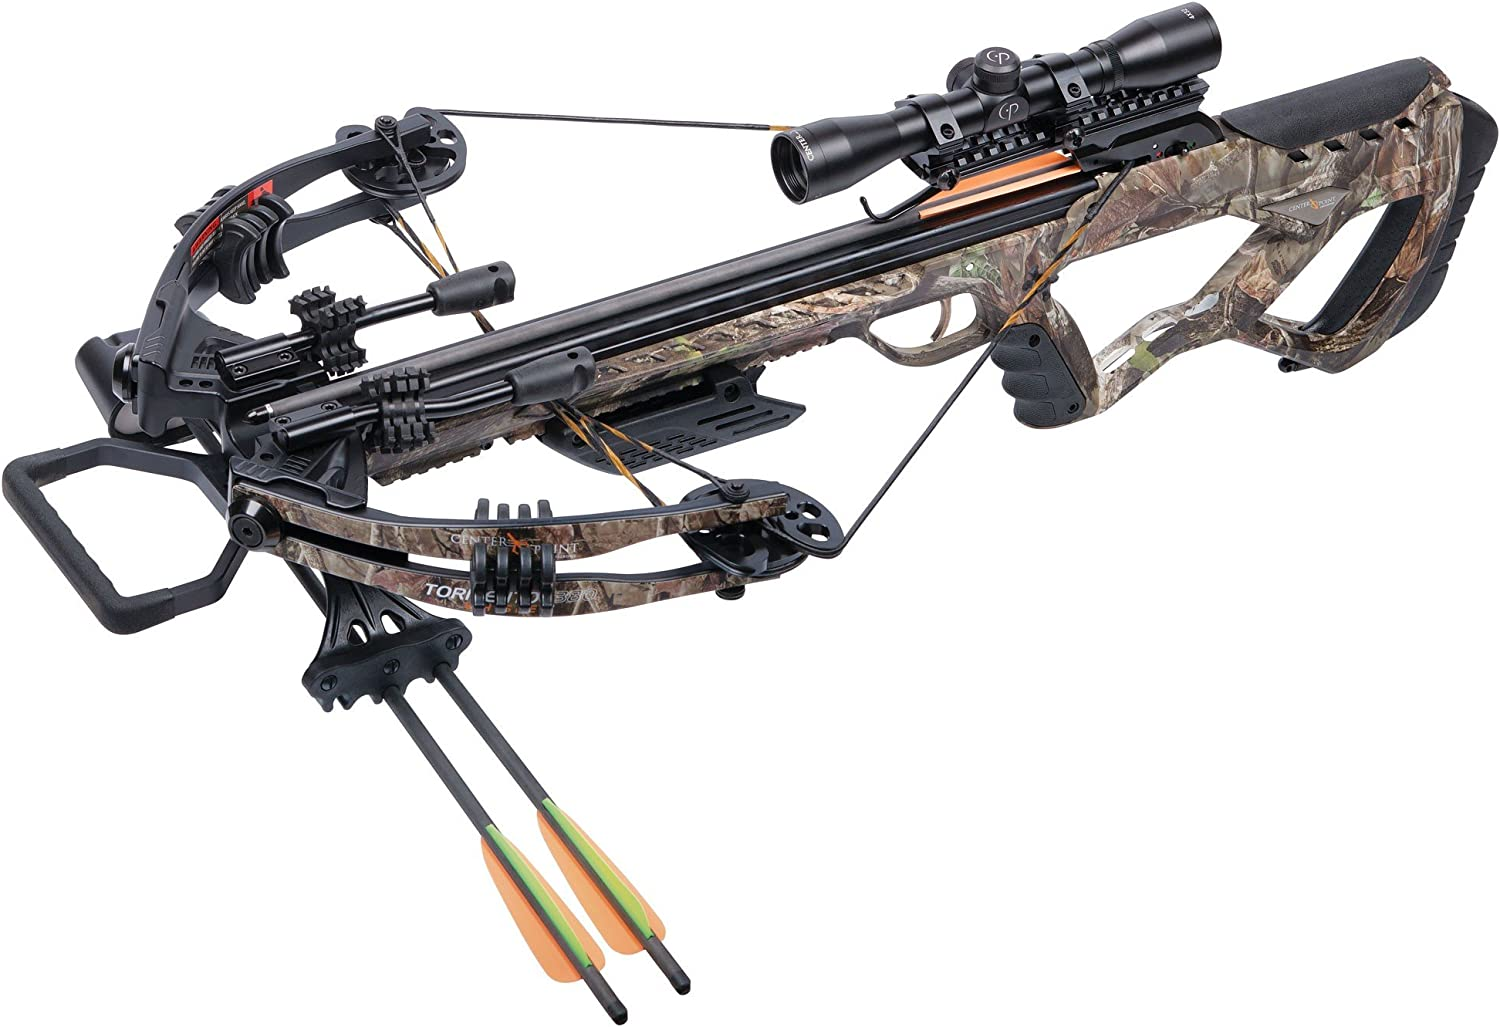 *CenterPoint Tormentor Whisper AXCTW185CK Compound Crossbow with 4×32 Scope, RCD